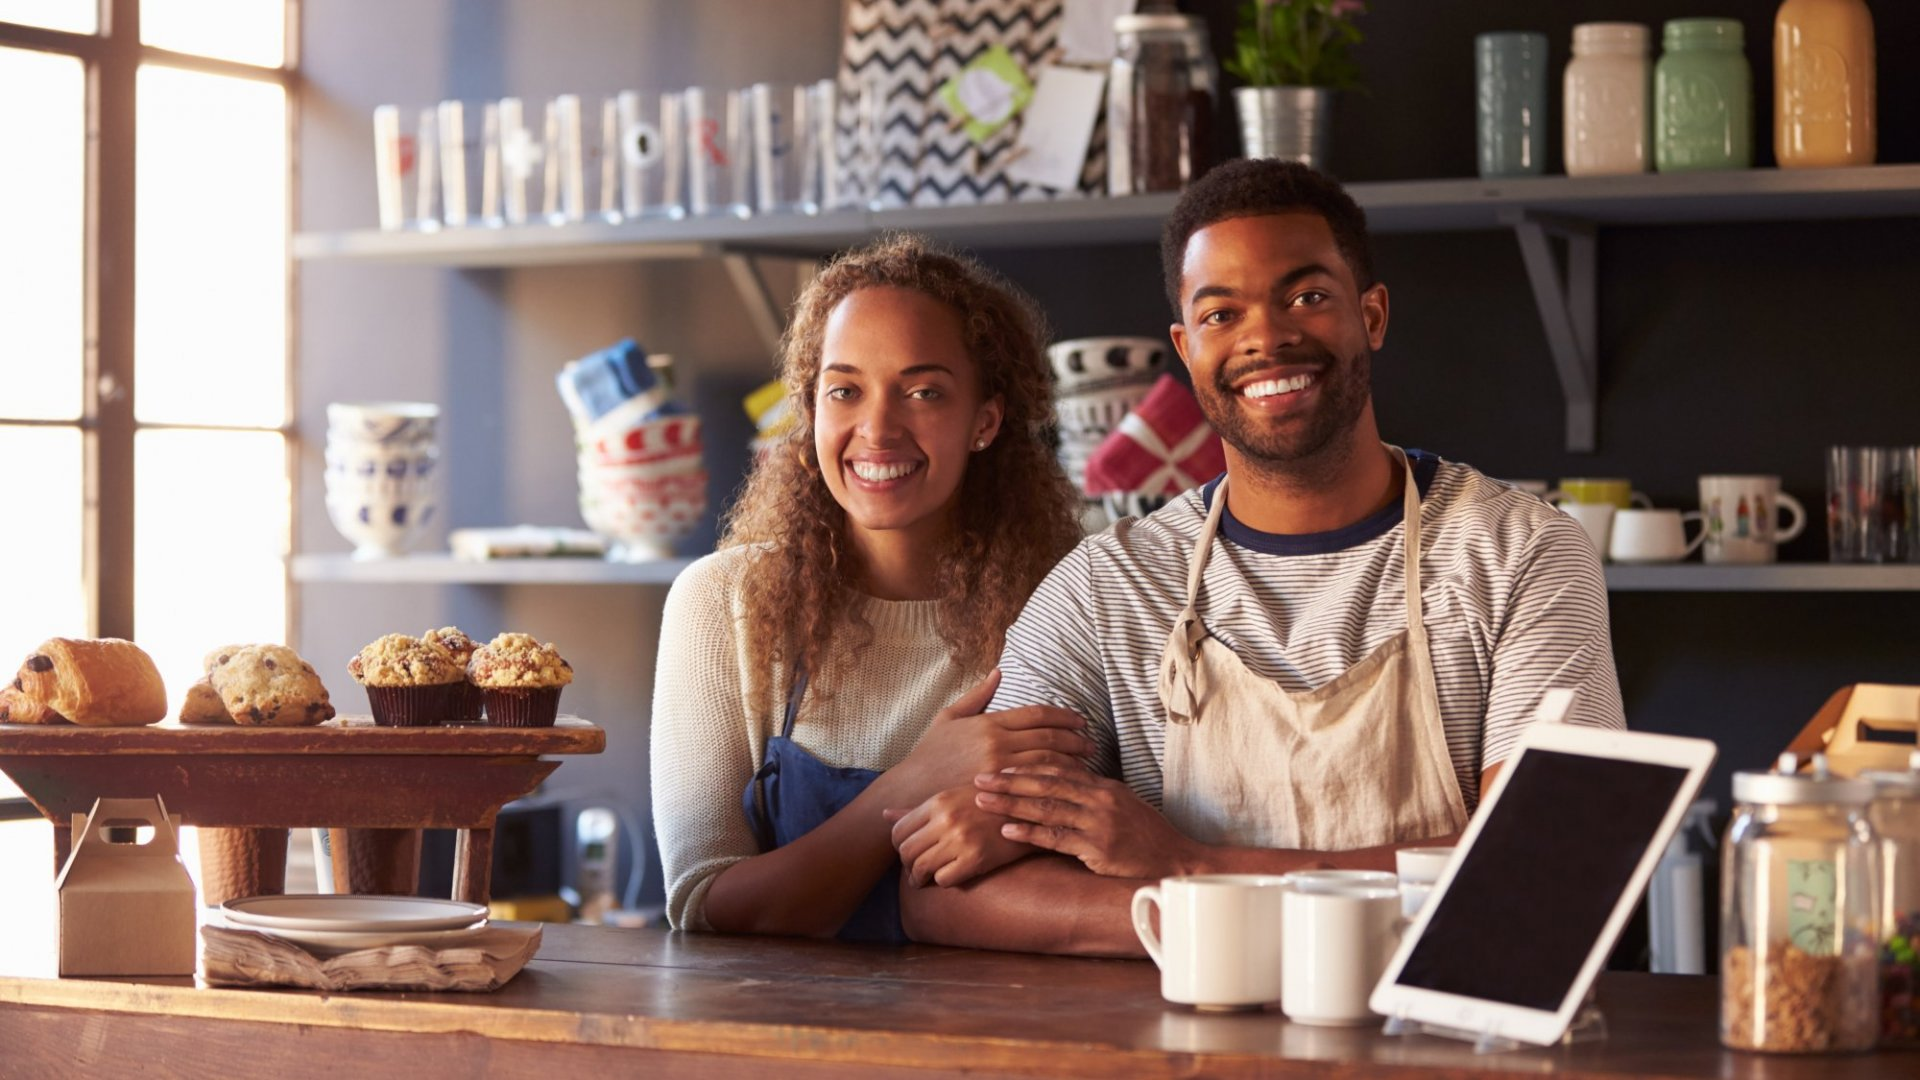 Lessons Learned From Running a Business With Your Life Partner